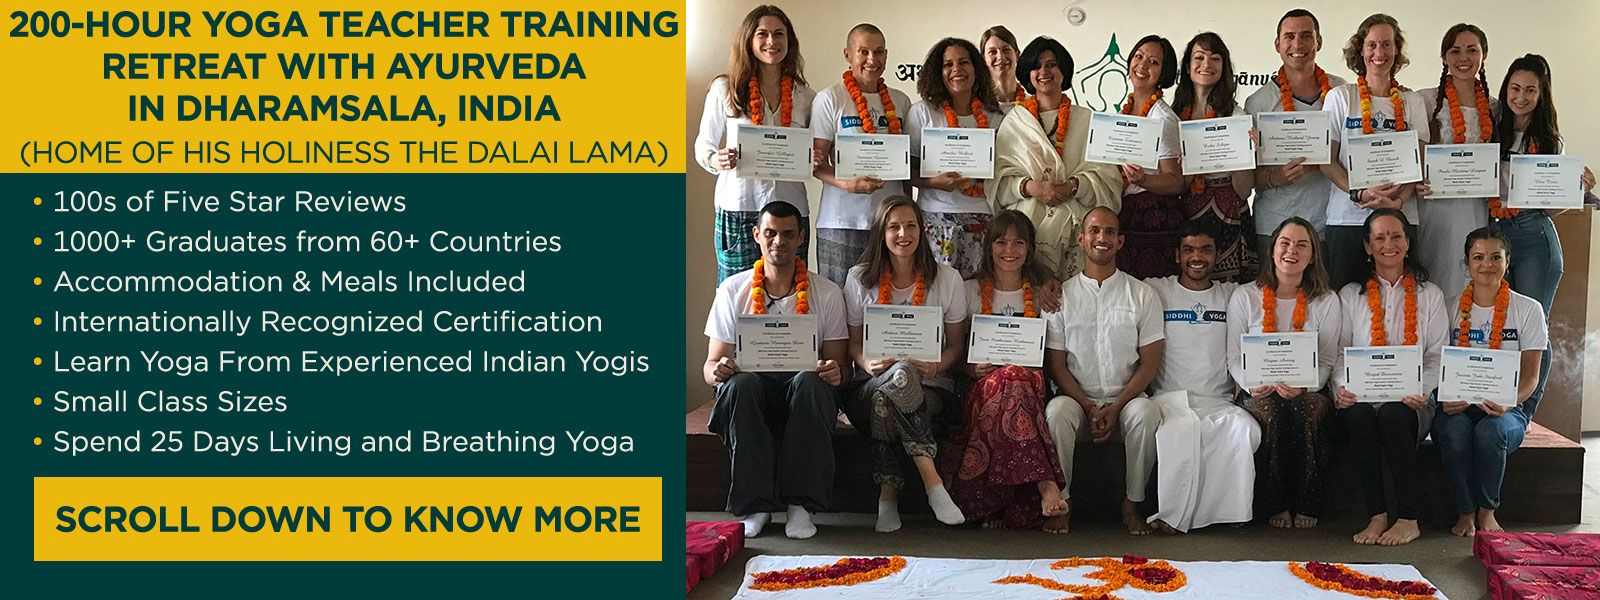 yoga teacher training dharamkot dharamsala india 2018